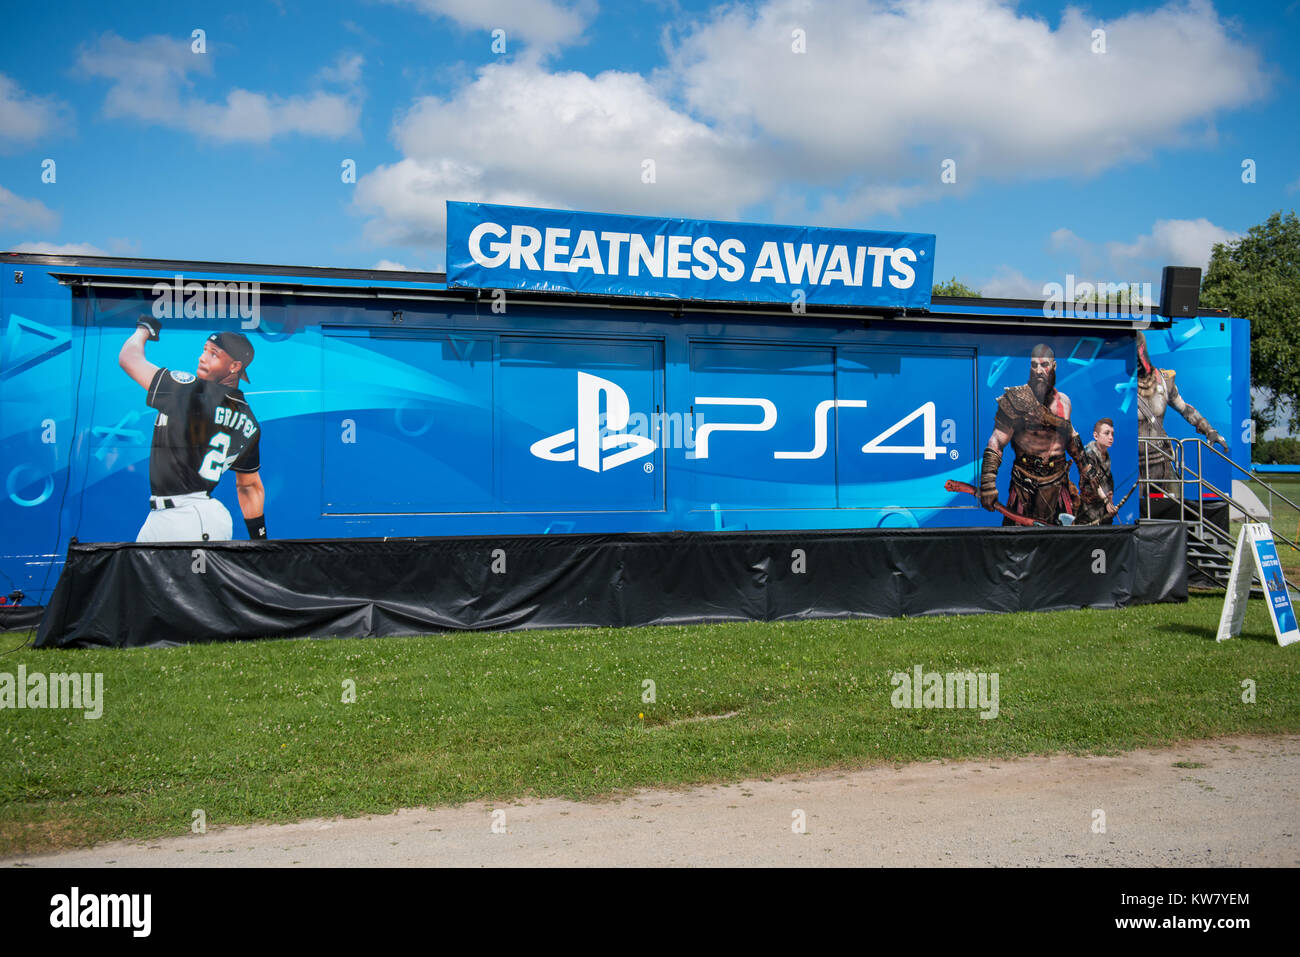 Oshkosh, WI - 24 July 2017:  A Sony Playstation PS4 display booth - Stock Image